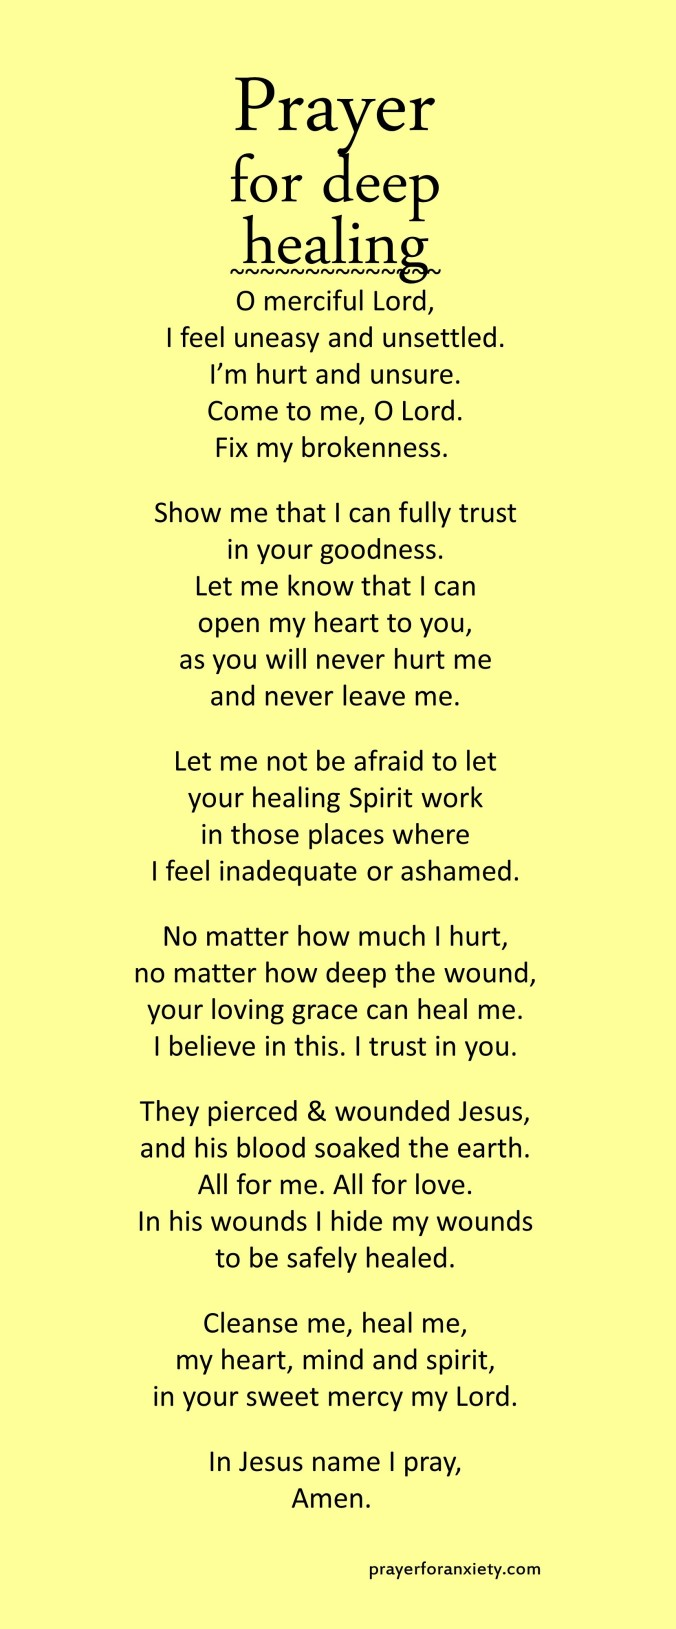 Prayer for deep healing